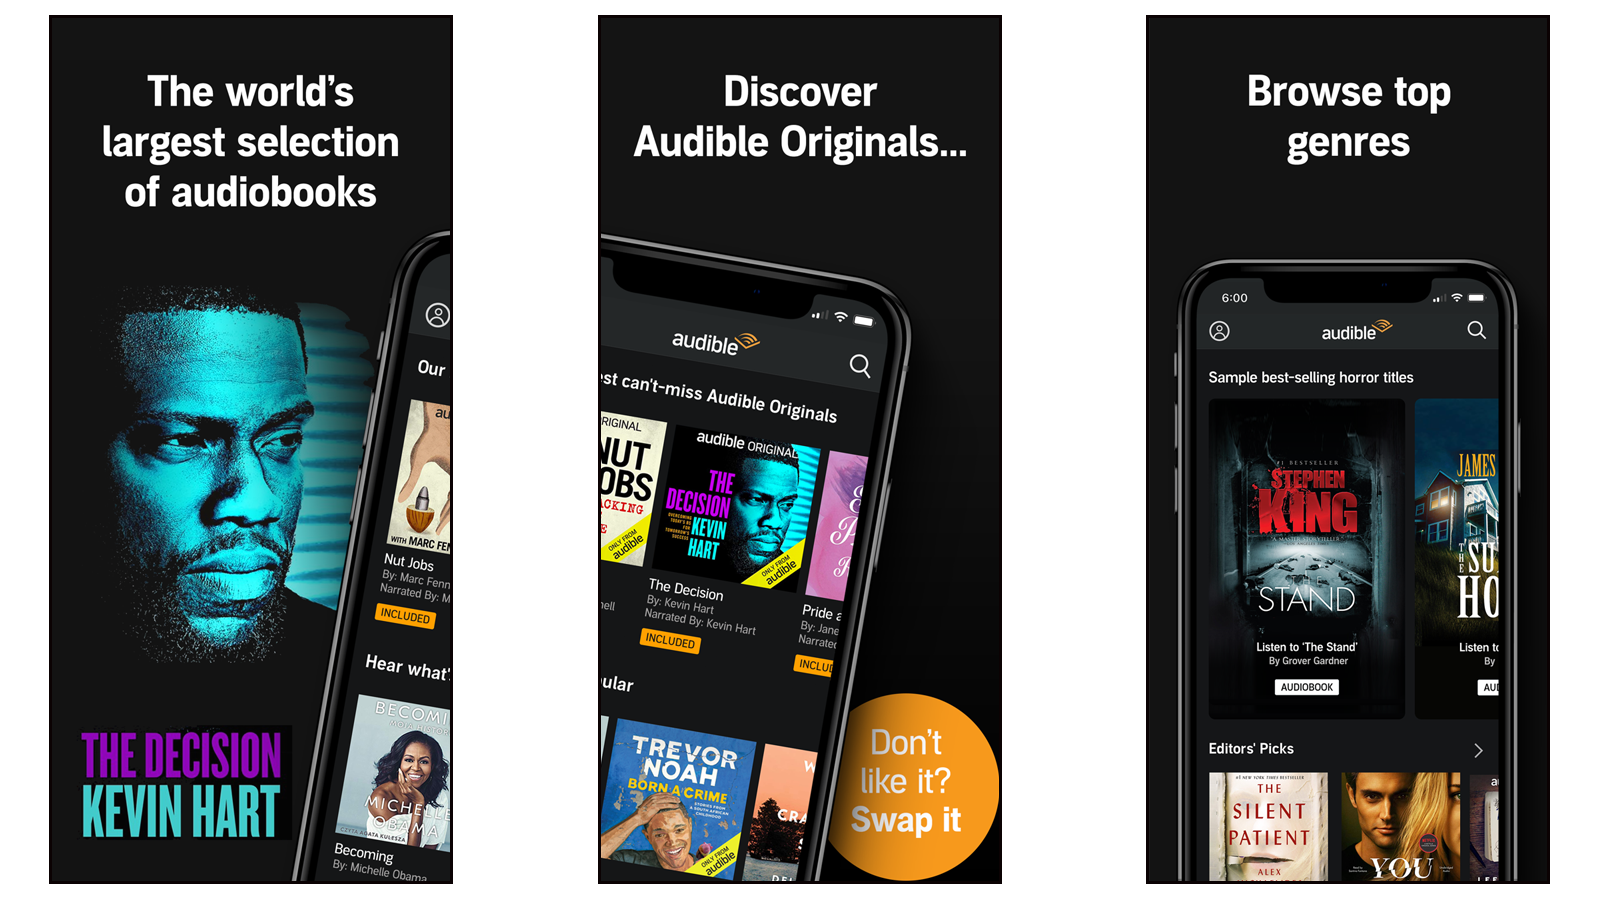 Audible app for finding and listening to audiobooks and podcasts